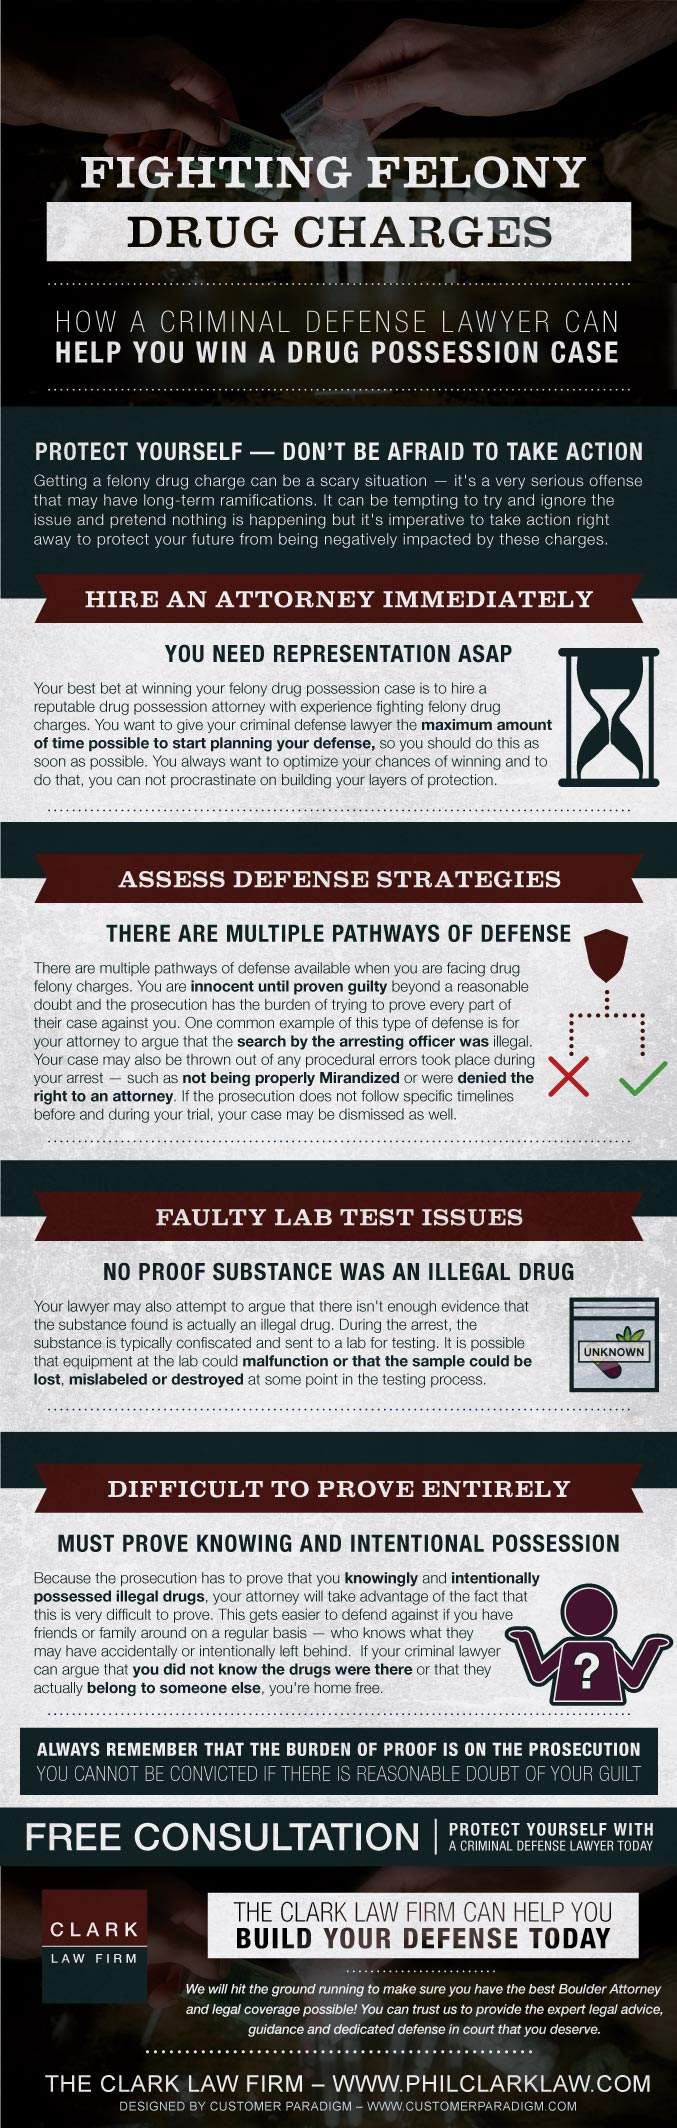 Infographic about how to fight felony drug charges with a criminal defense lawyer